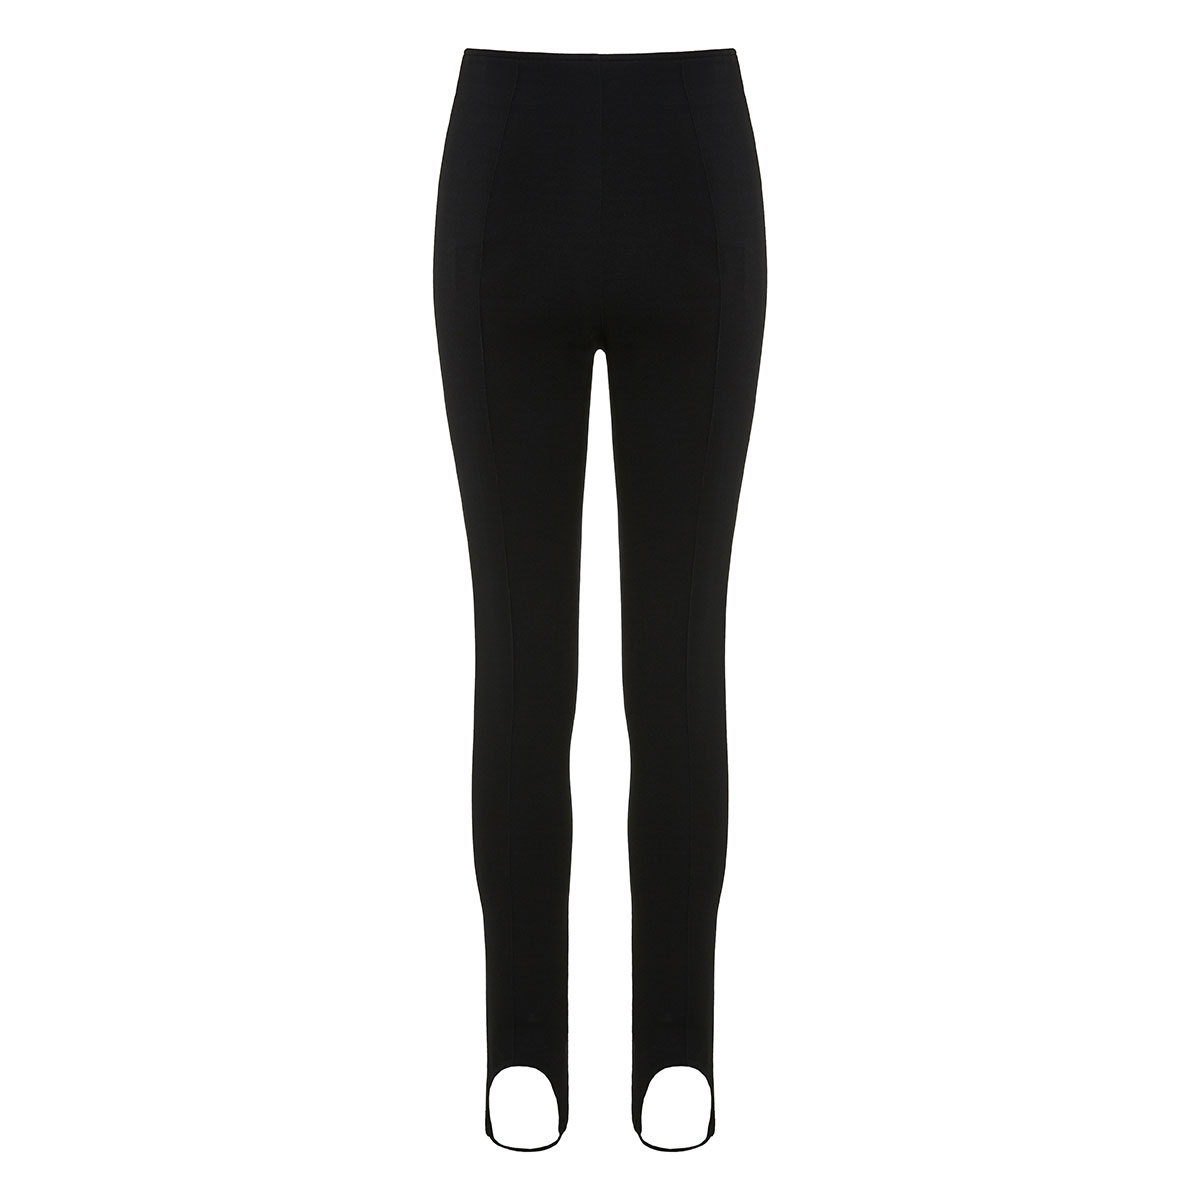 High-waist stirrup leggings